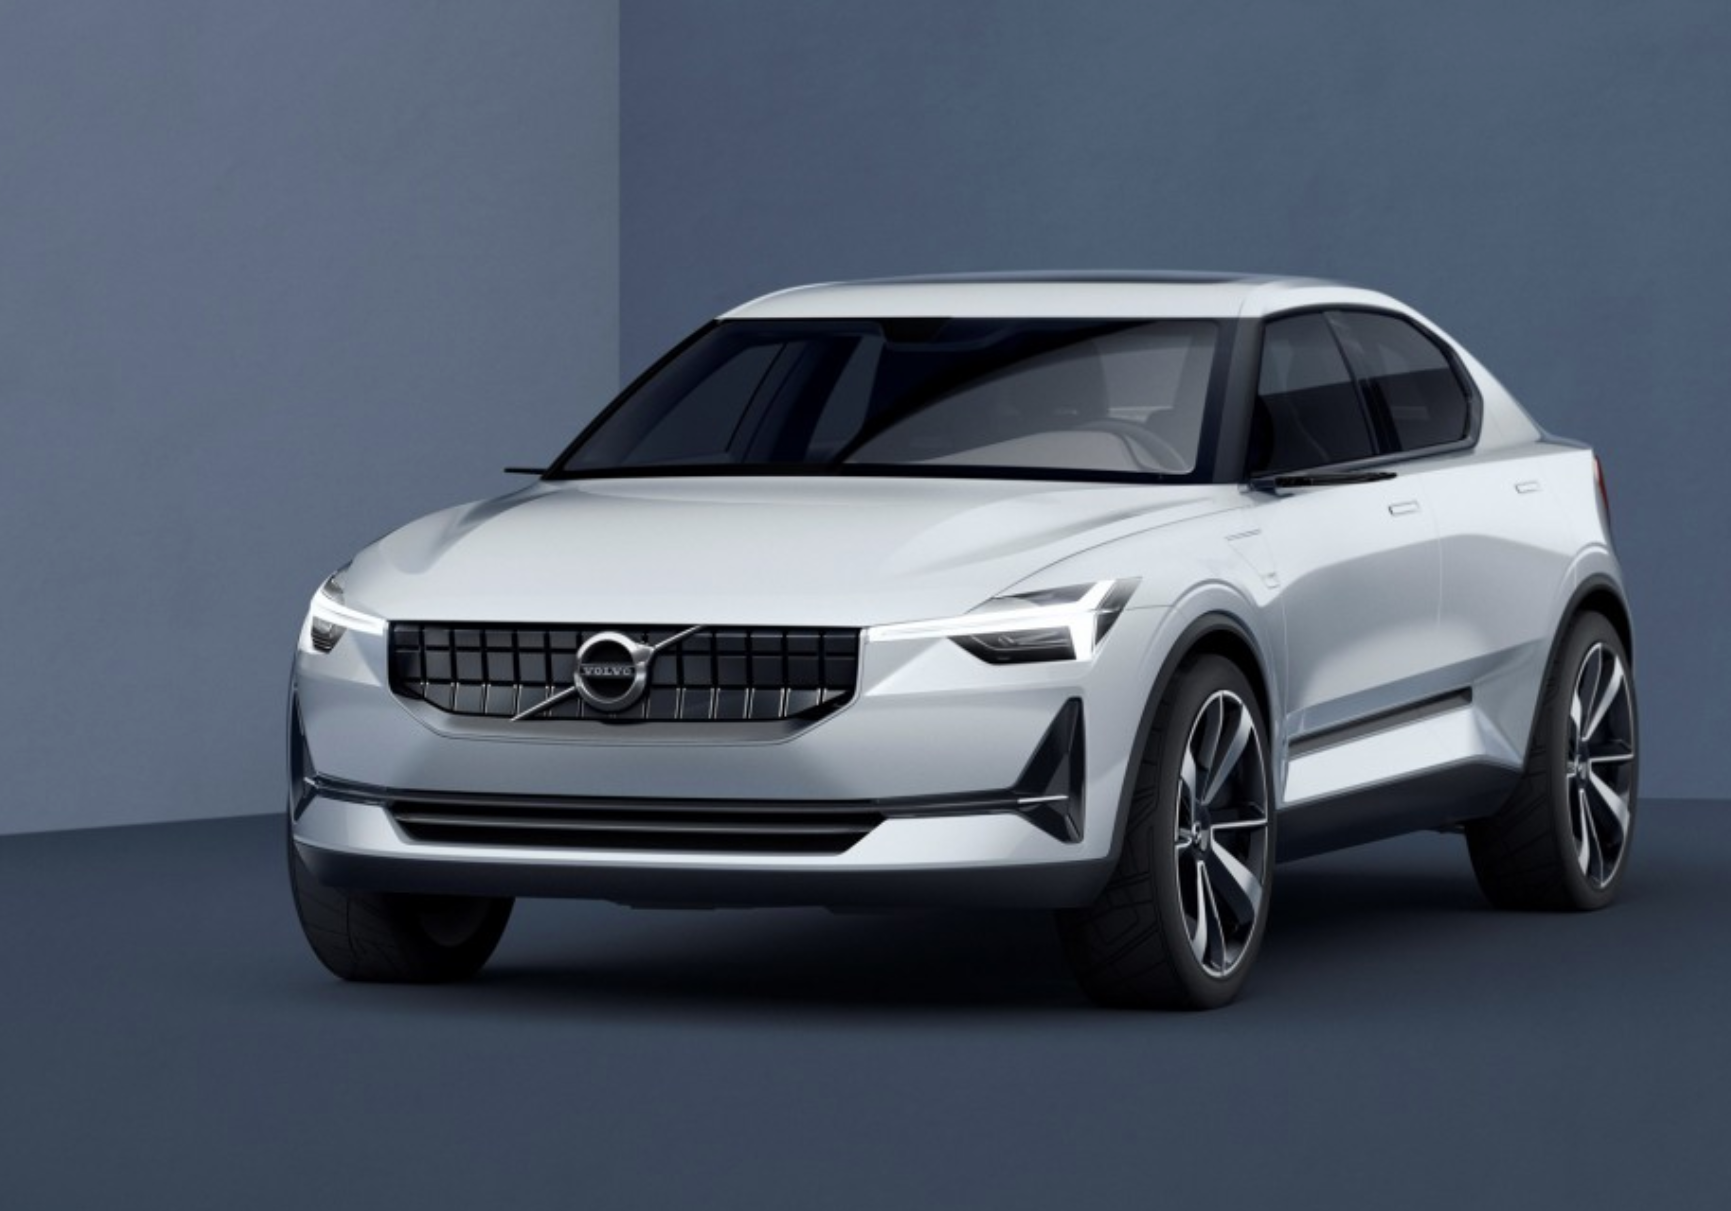 65 Concept of Volvo All Electric 2020 Overview with Volvo All Electric 2020